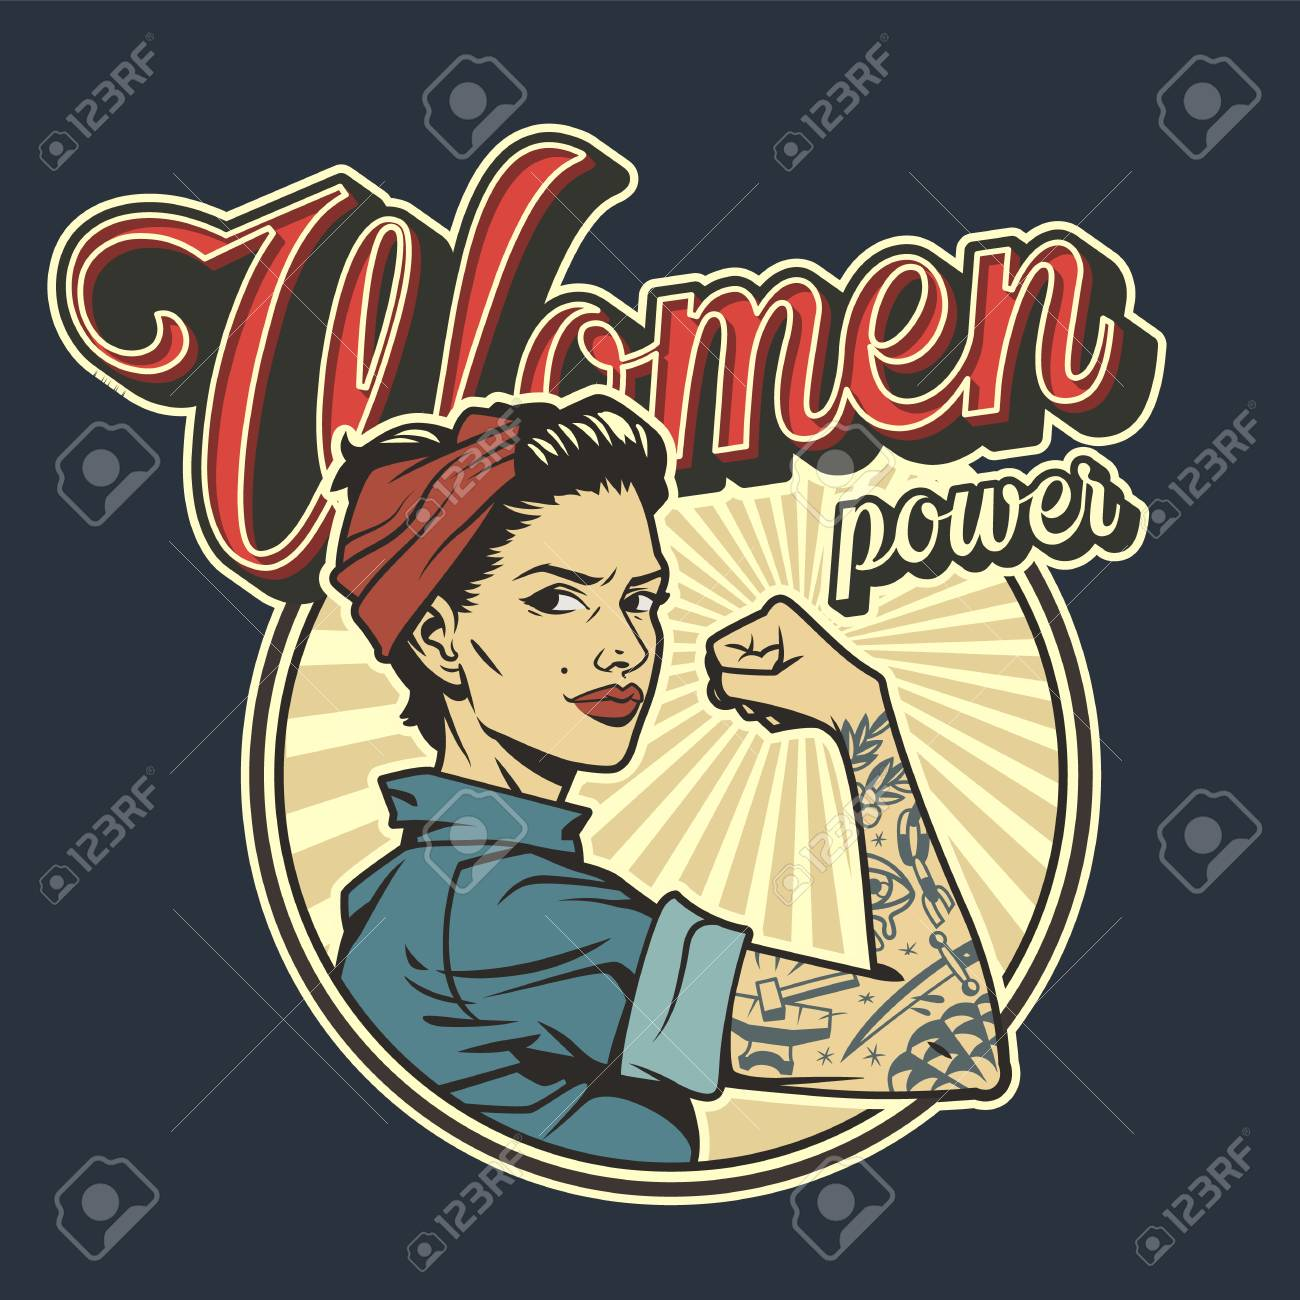 Vintage colorful woman power badge with beautiful strong girl in uniform with tattoo on arm isolated vector illustration - 121467107